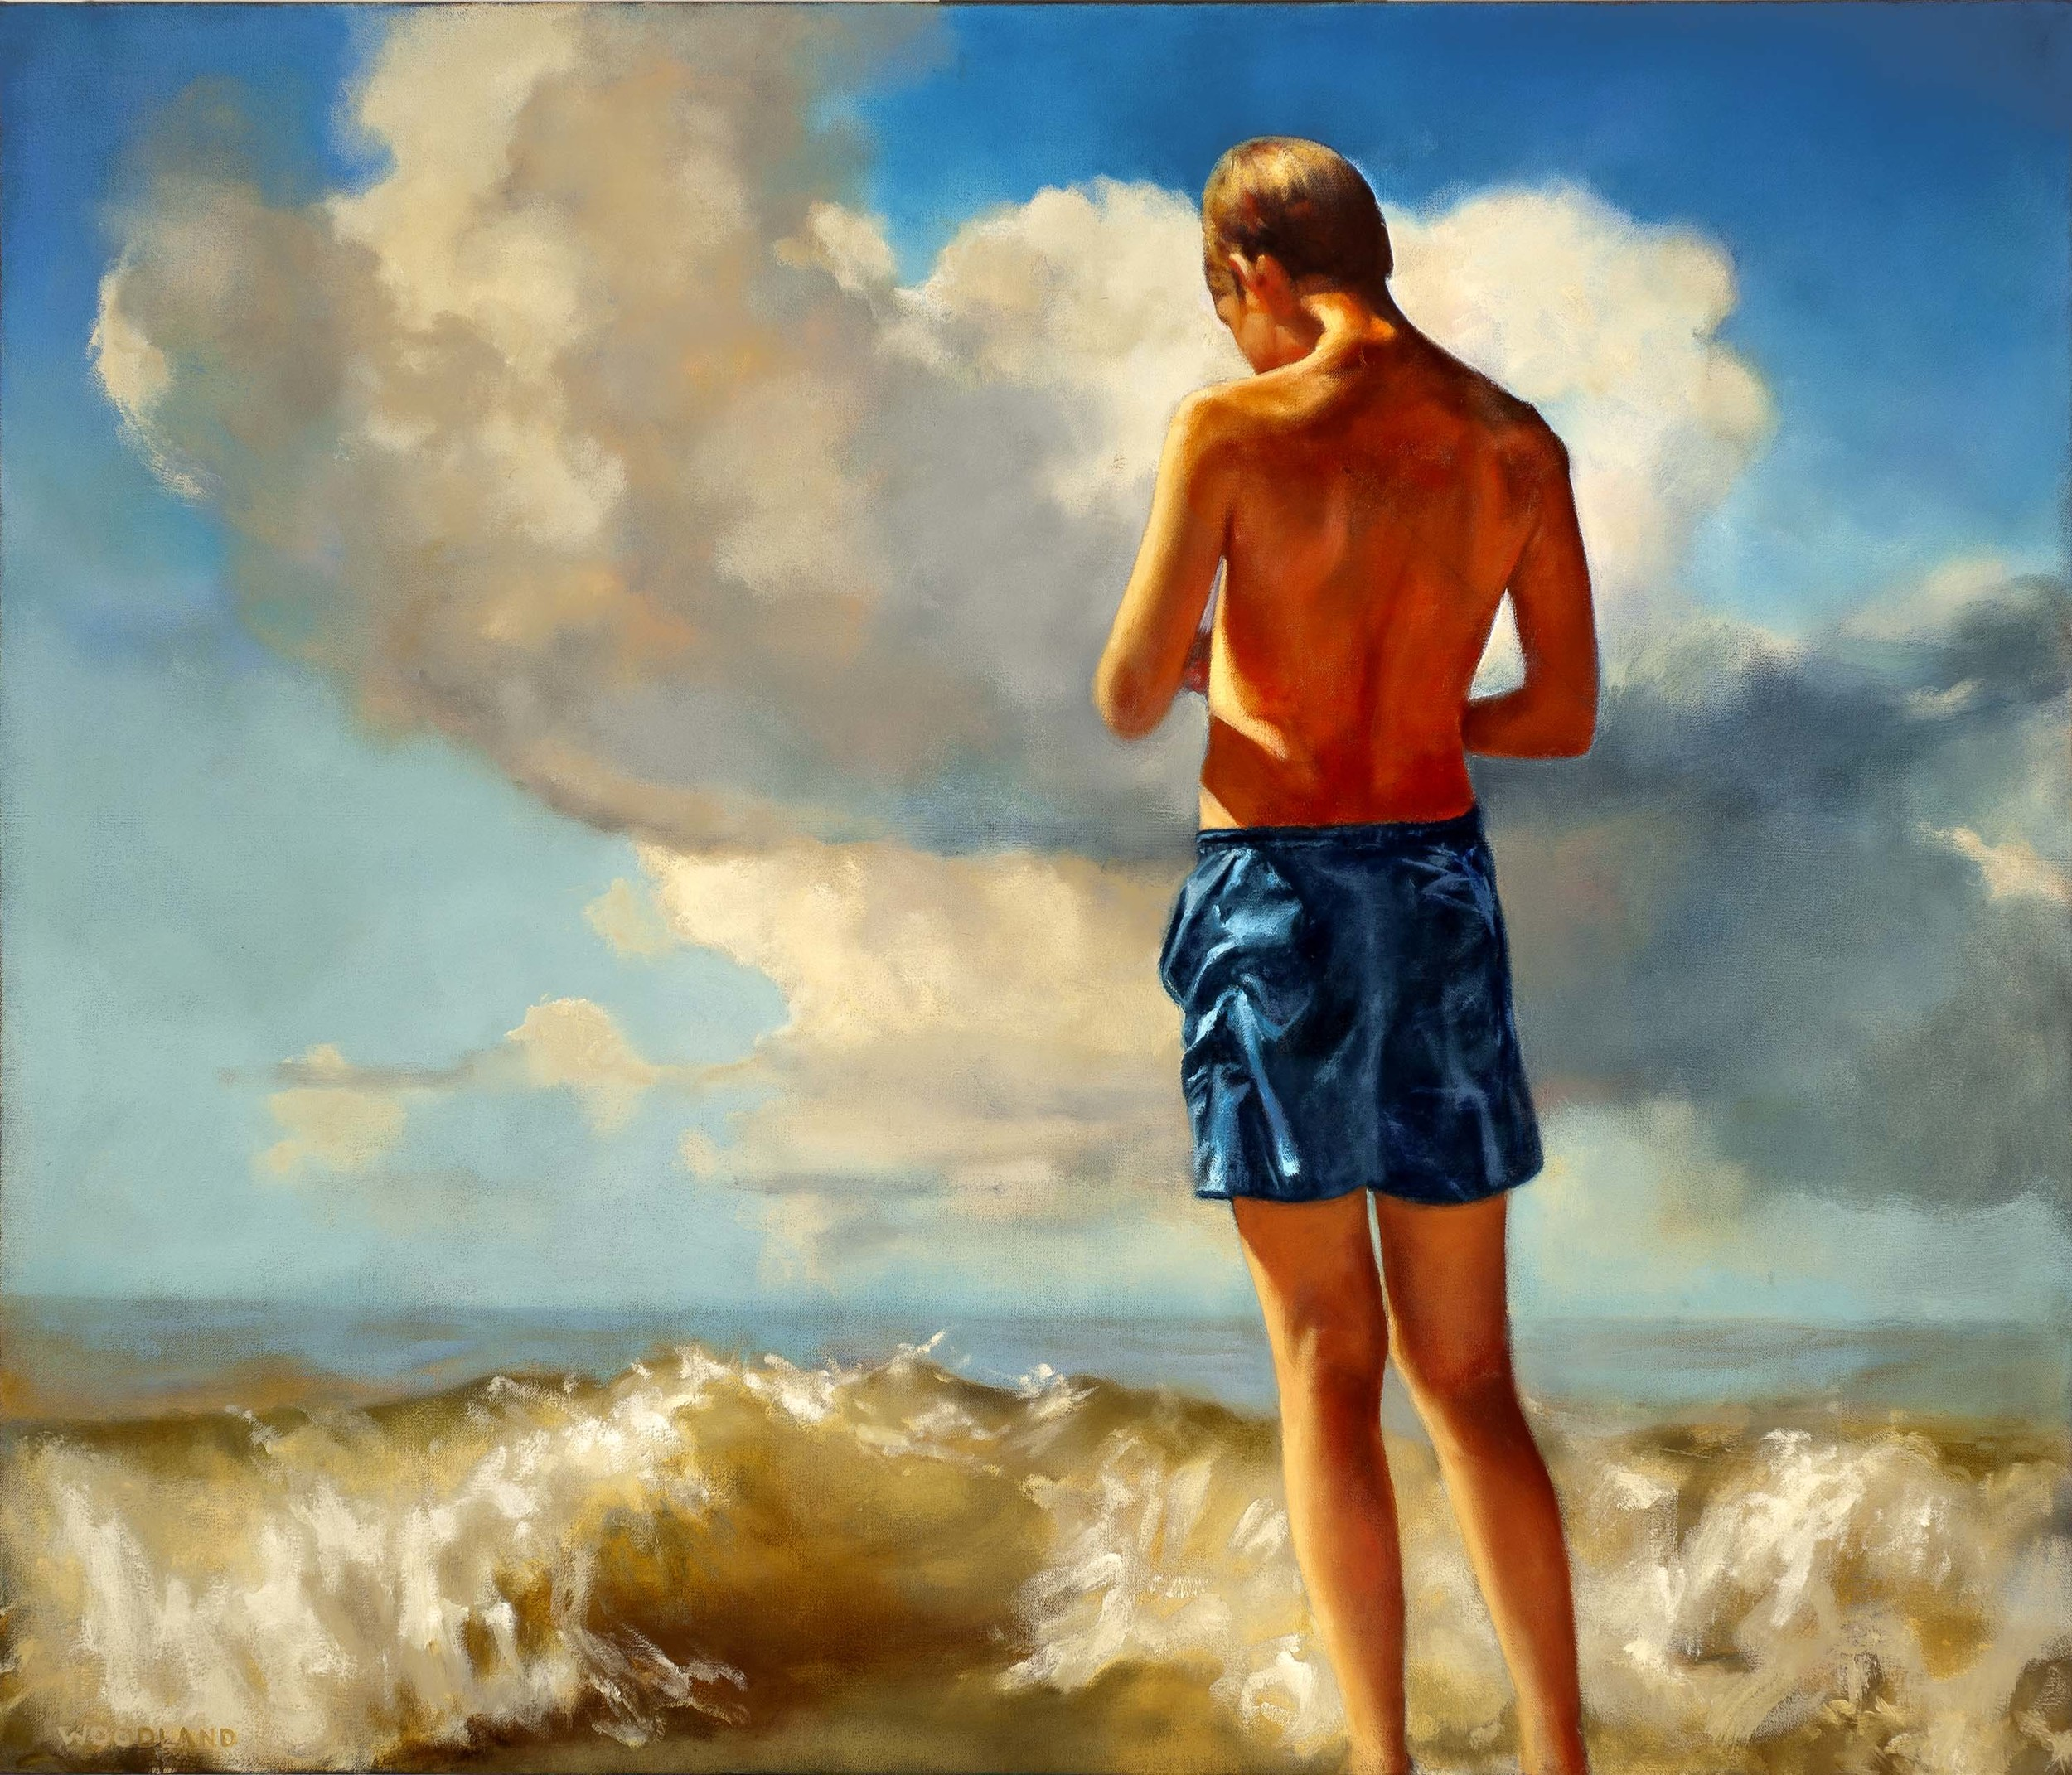 "Wave, oil on canvas, 2012, 42"" x 36"", SOLD"